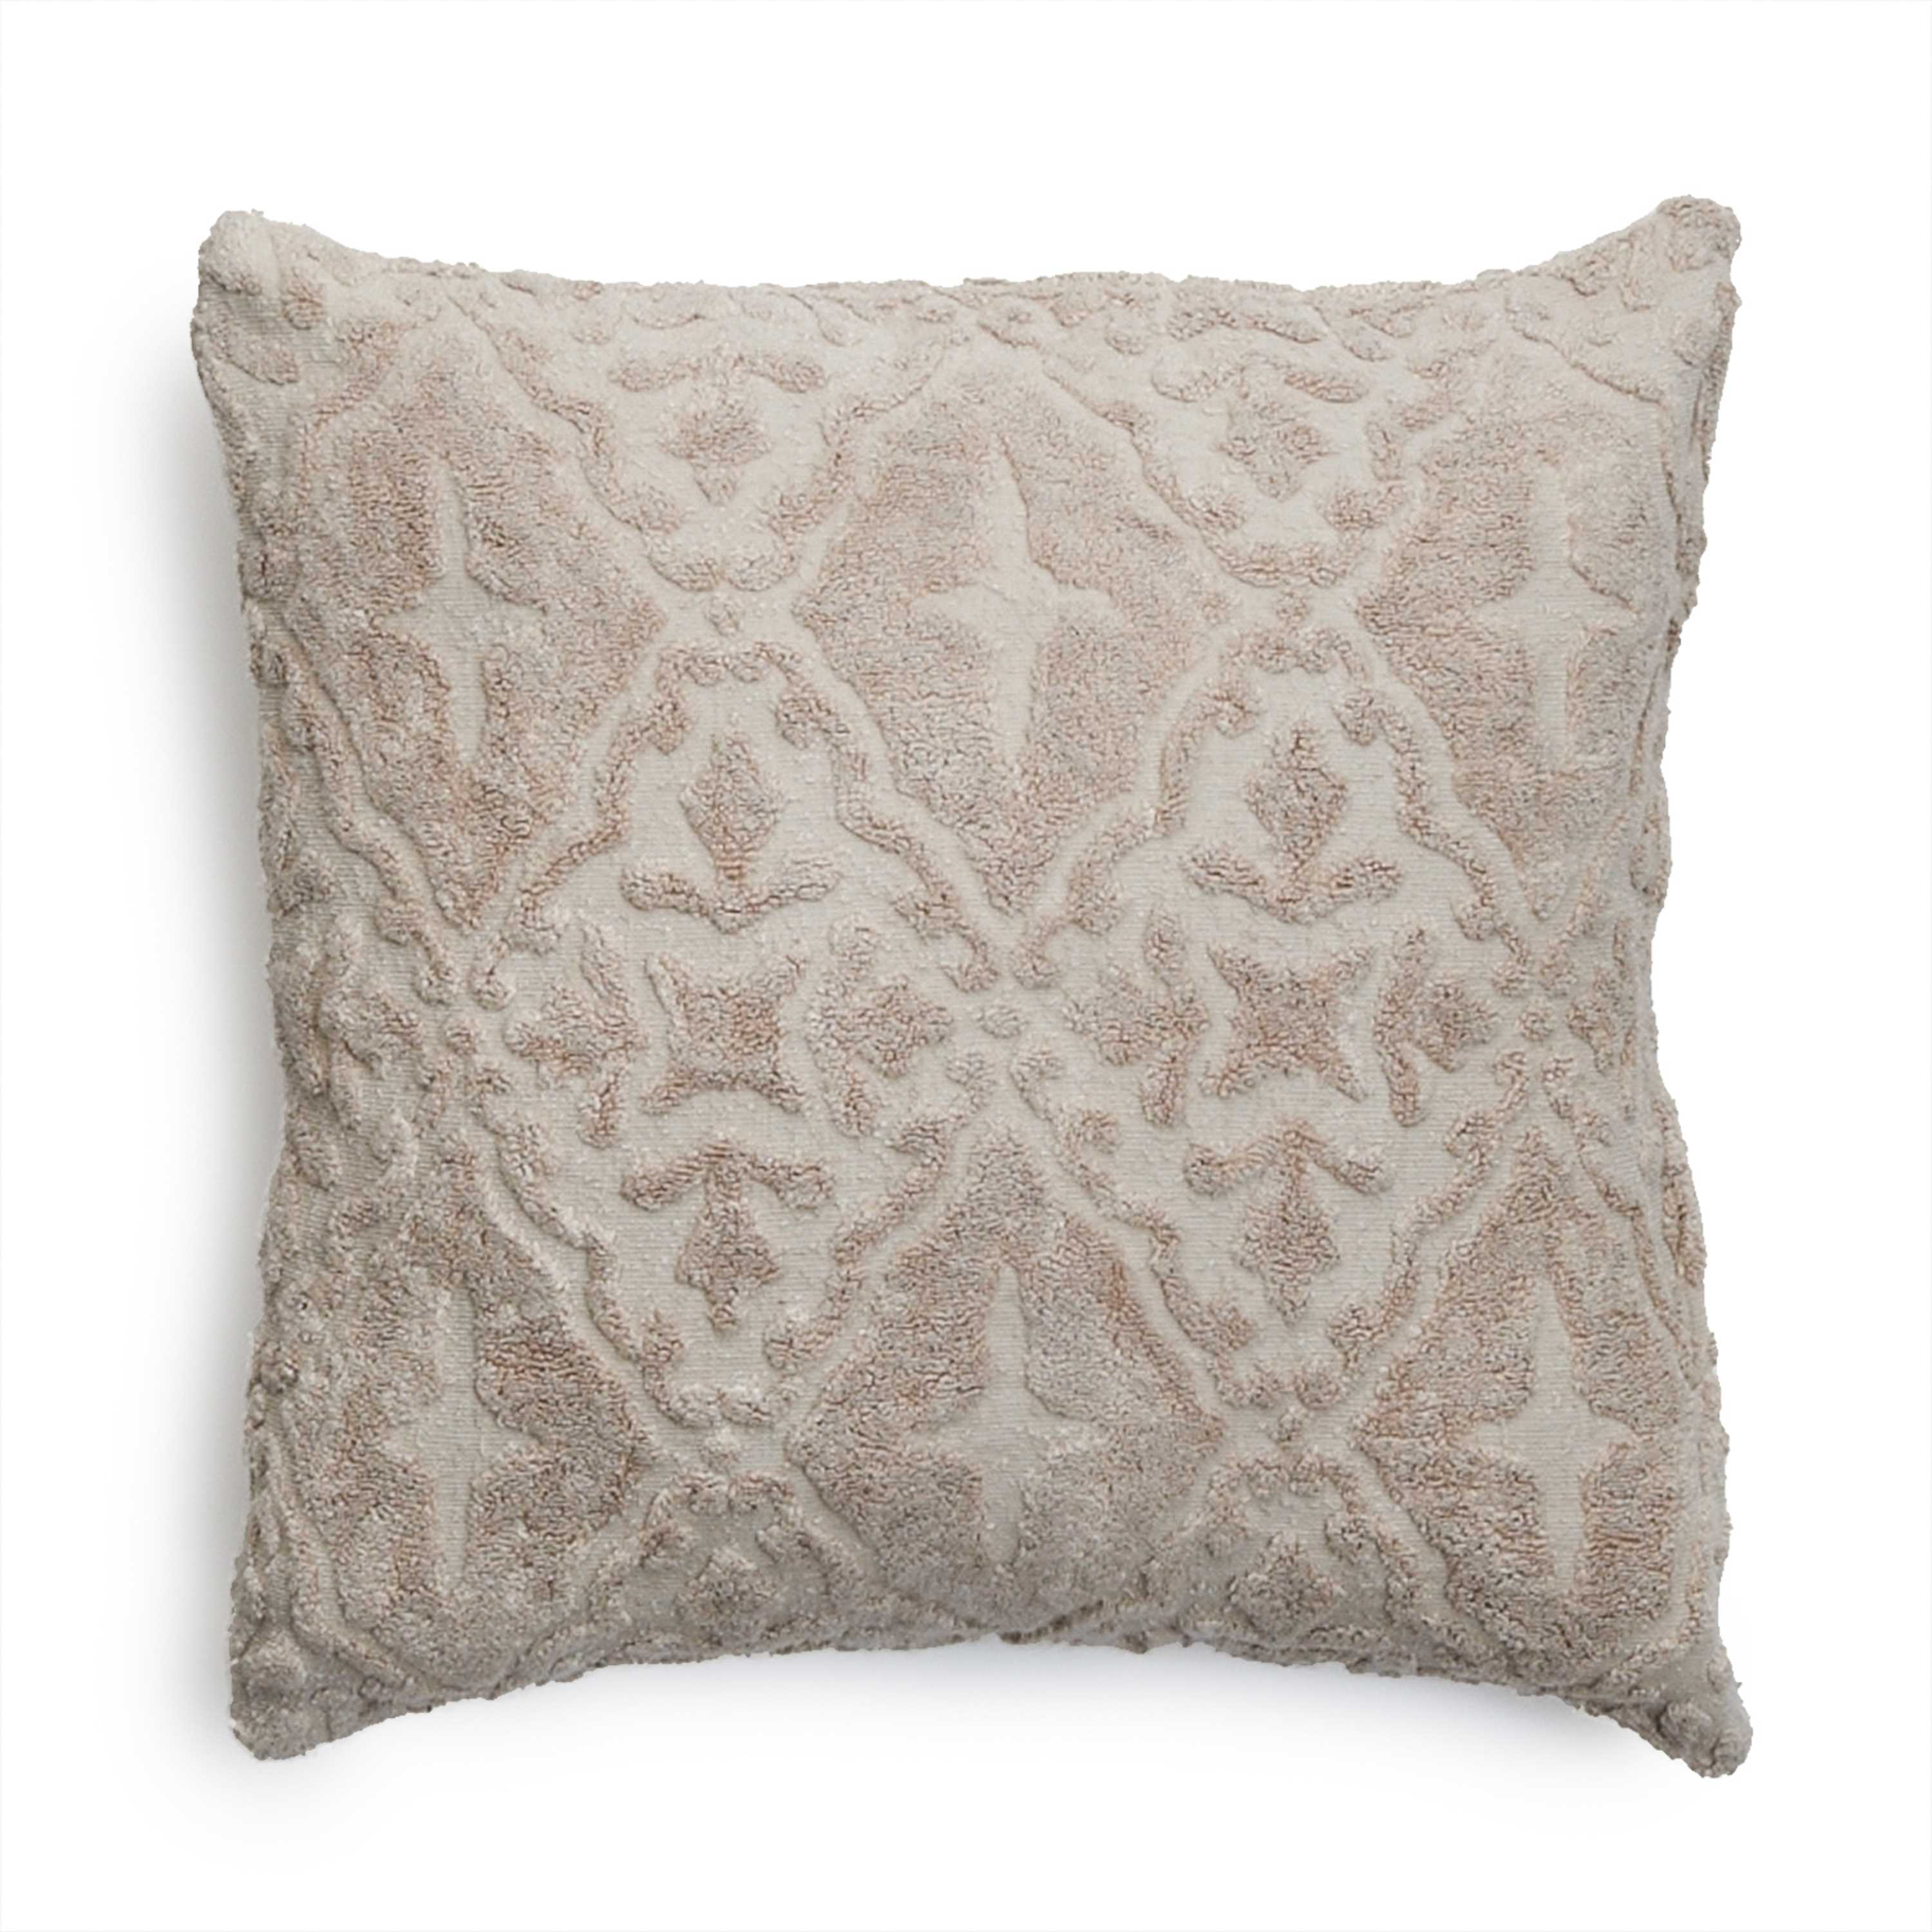 CUSHION COVER (KAPUA)